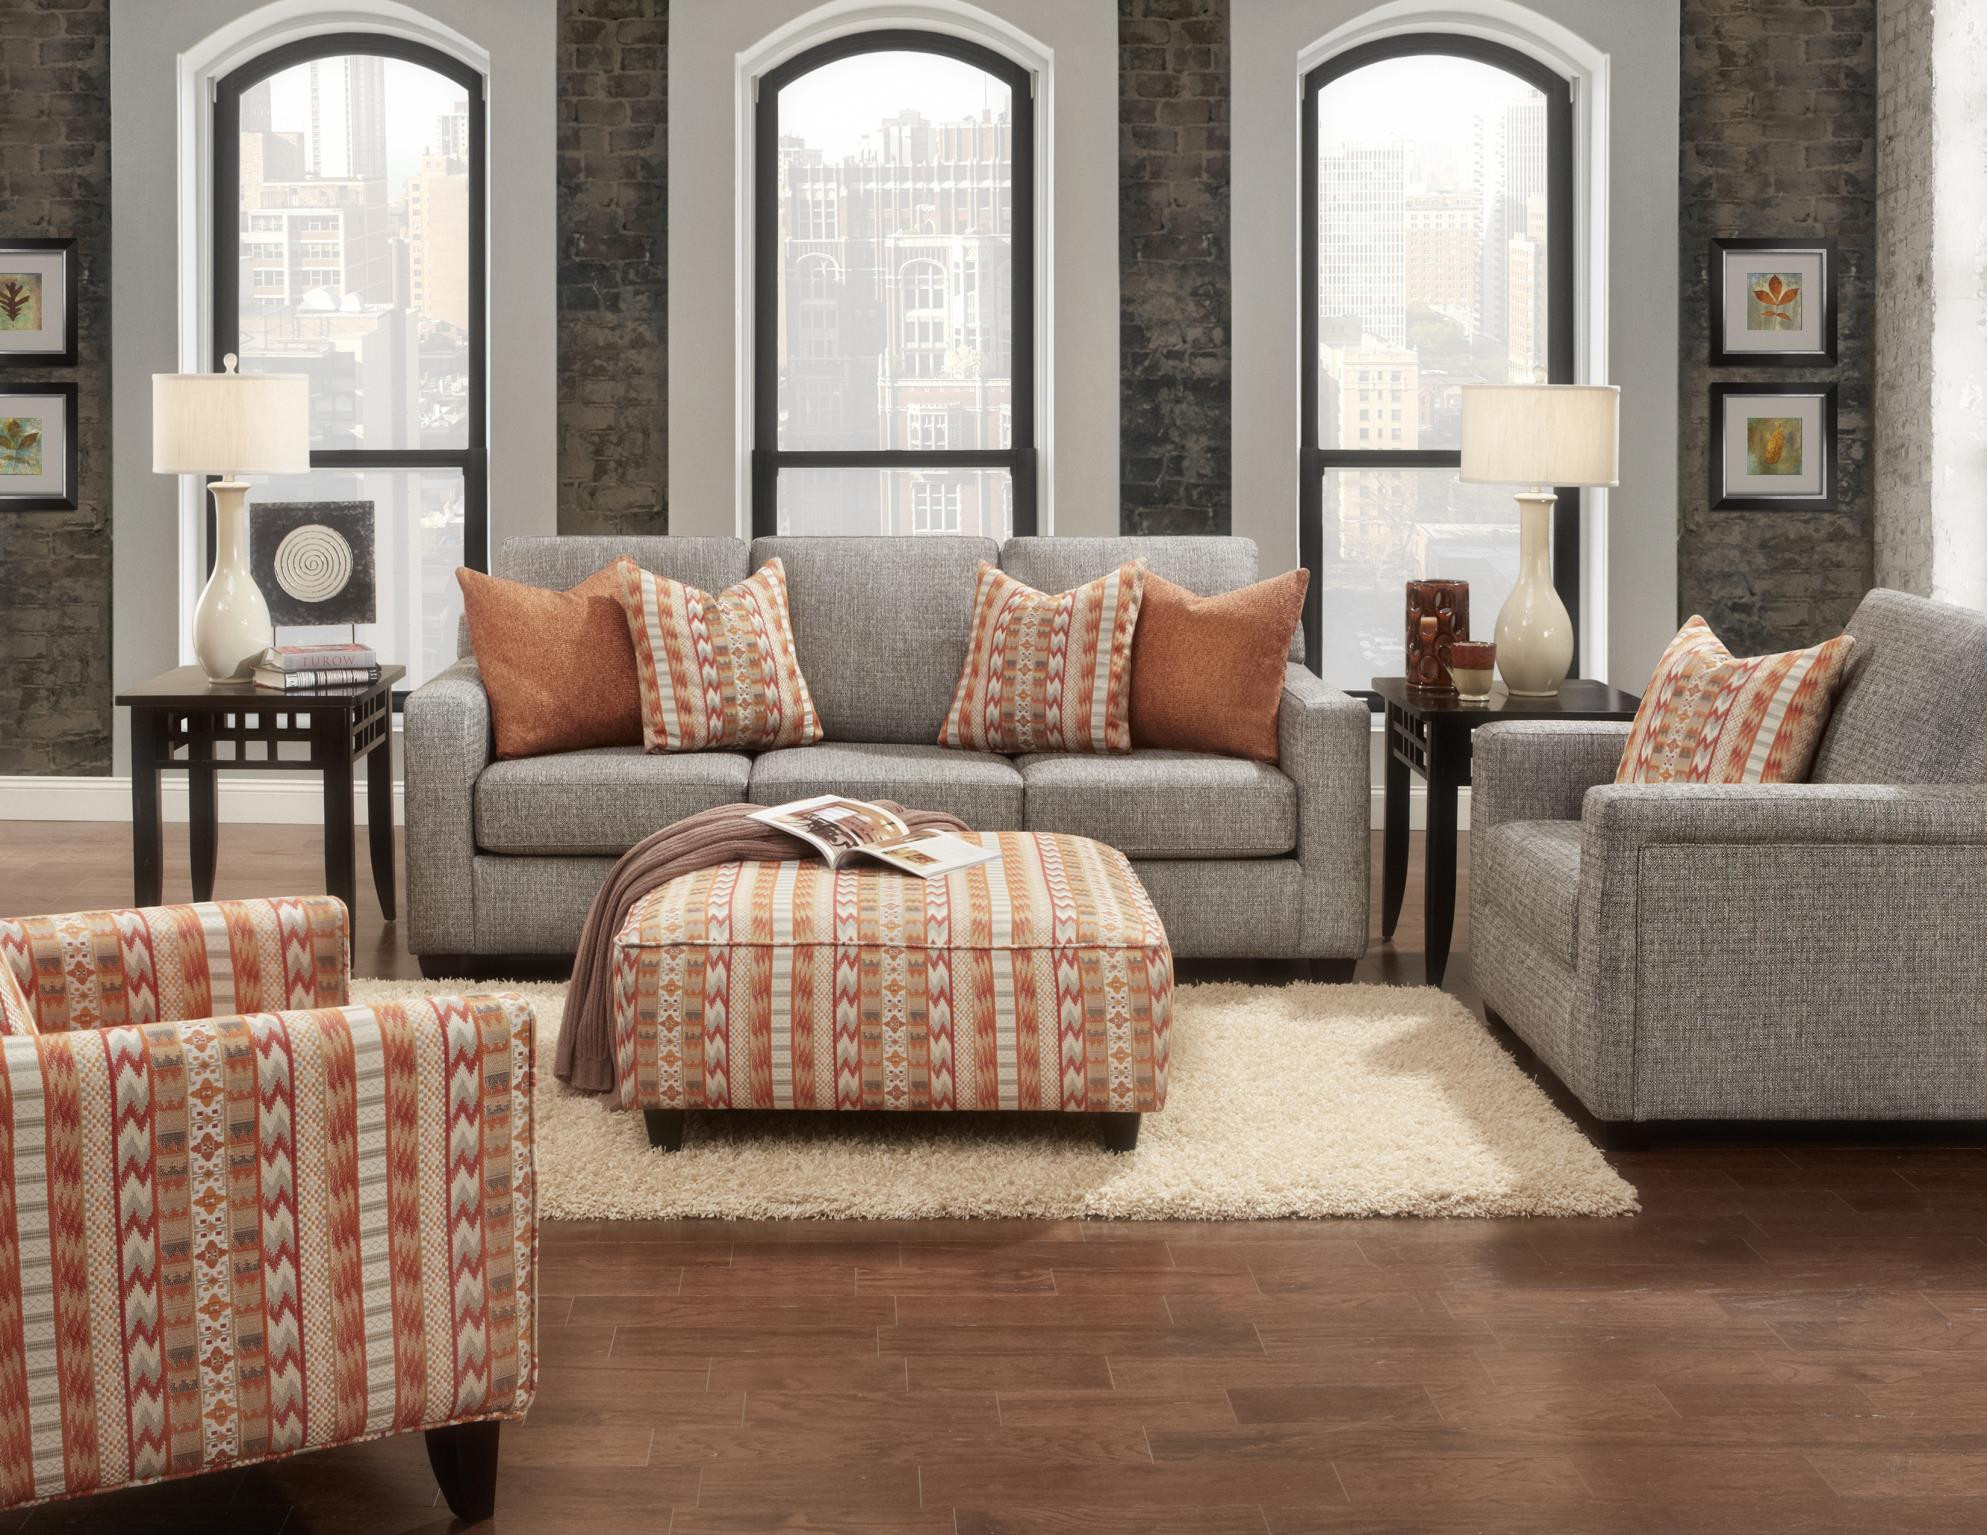 Best ideas about Living Room Couches . Save or Pin Living Room Furniture Inside Out Furniture and Design Now.